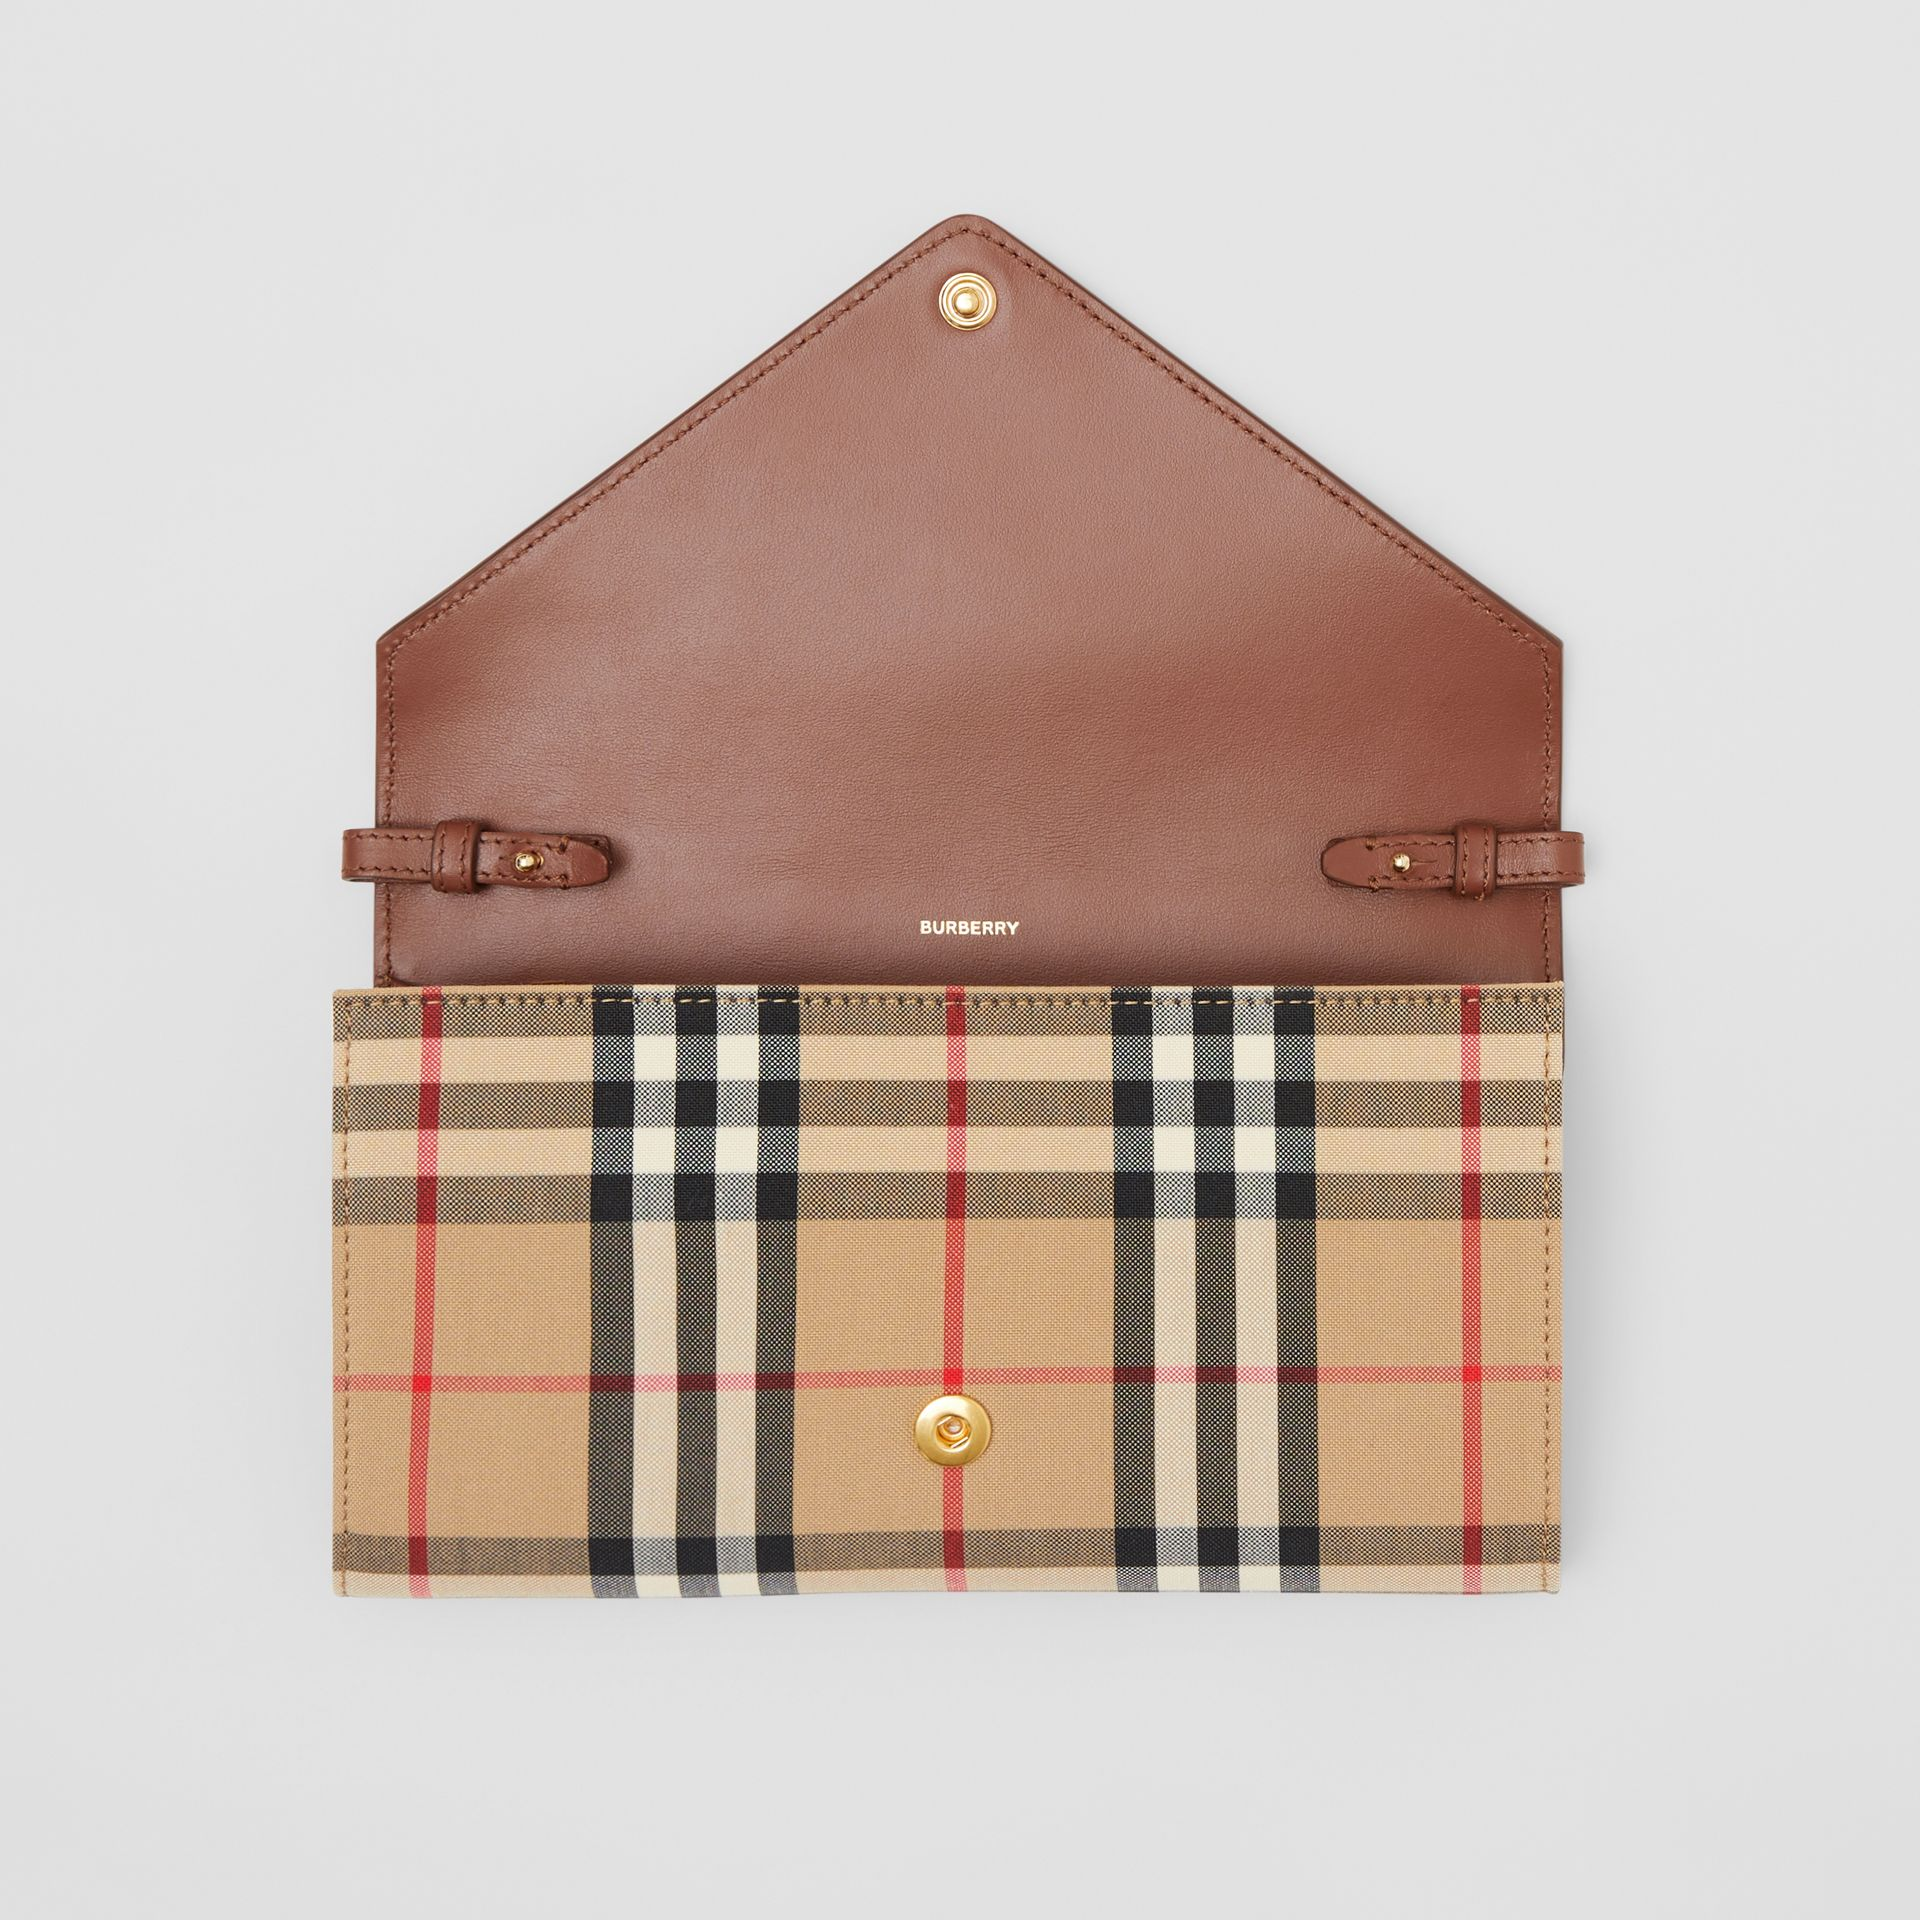 Vintage Check and Leather Wallet with Detachable Strap in Tan - Women | Burberry - gallery image 8